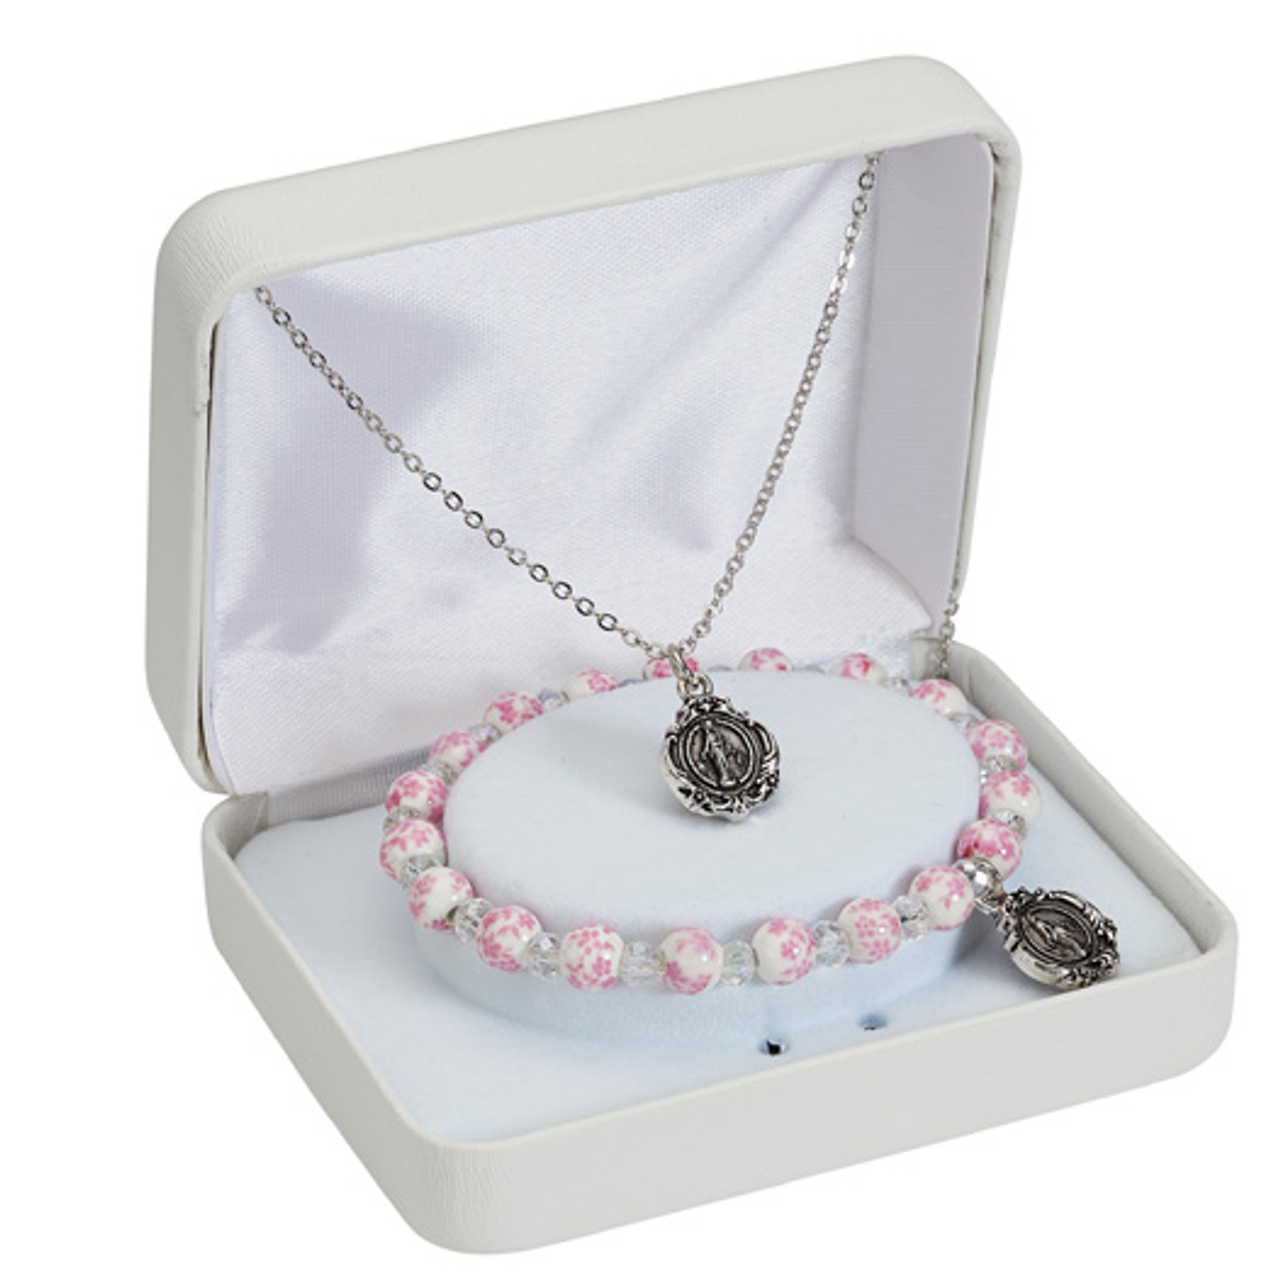 Miraculous Medal Set Necklace Bracelet Pink Ceramic Beads Gift Box Mapnd2w